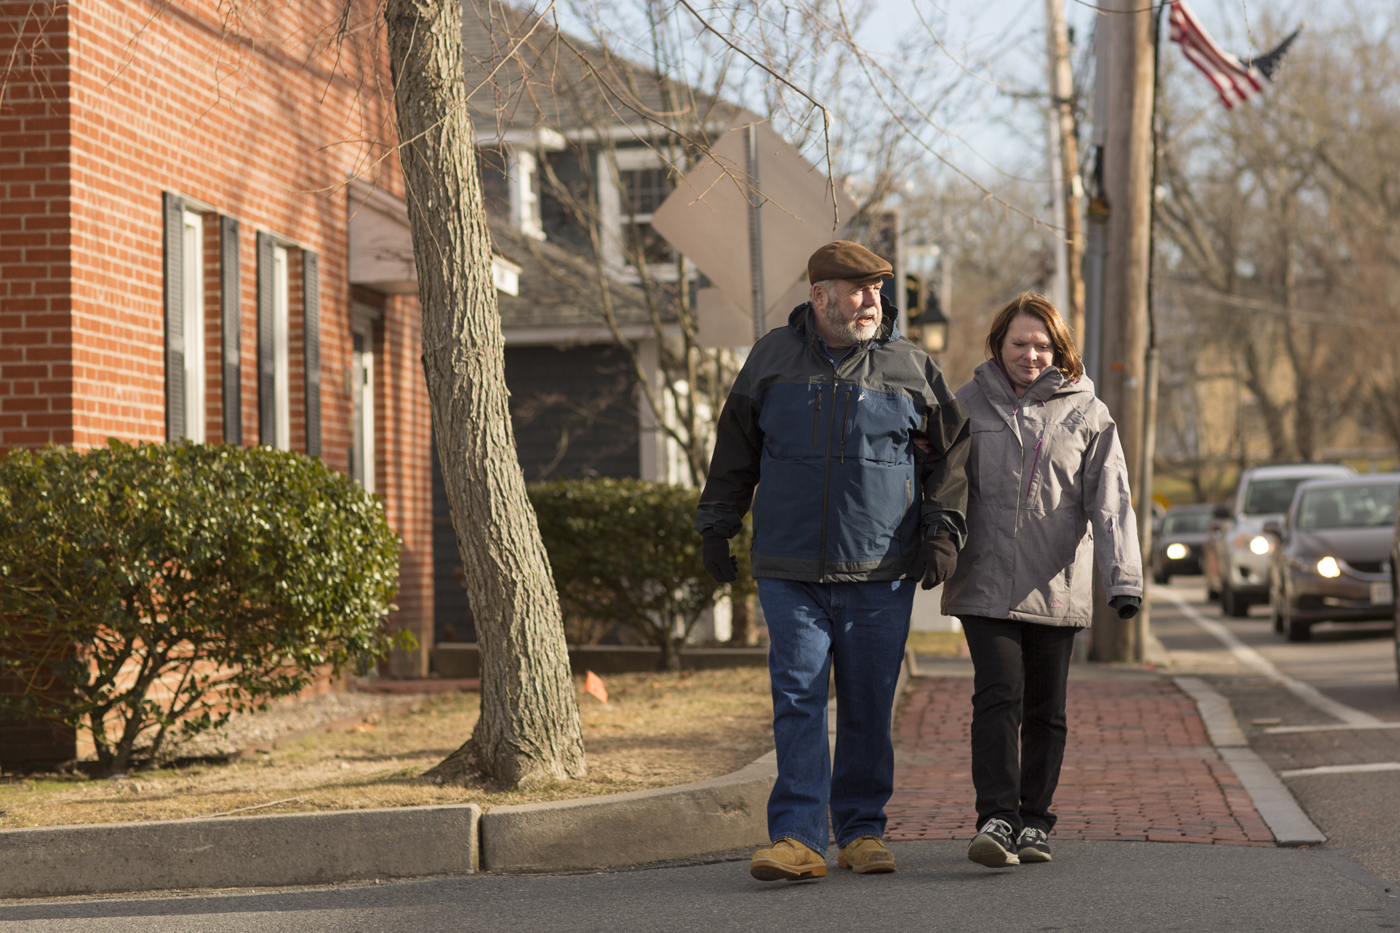 Ramona and her husband walk along a local town road.